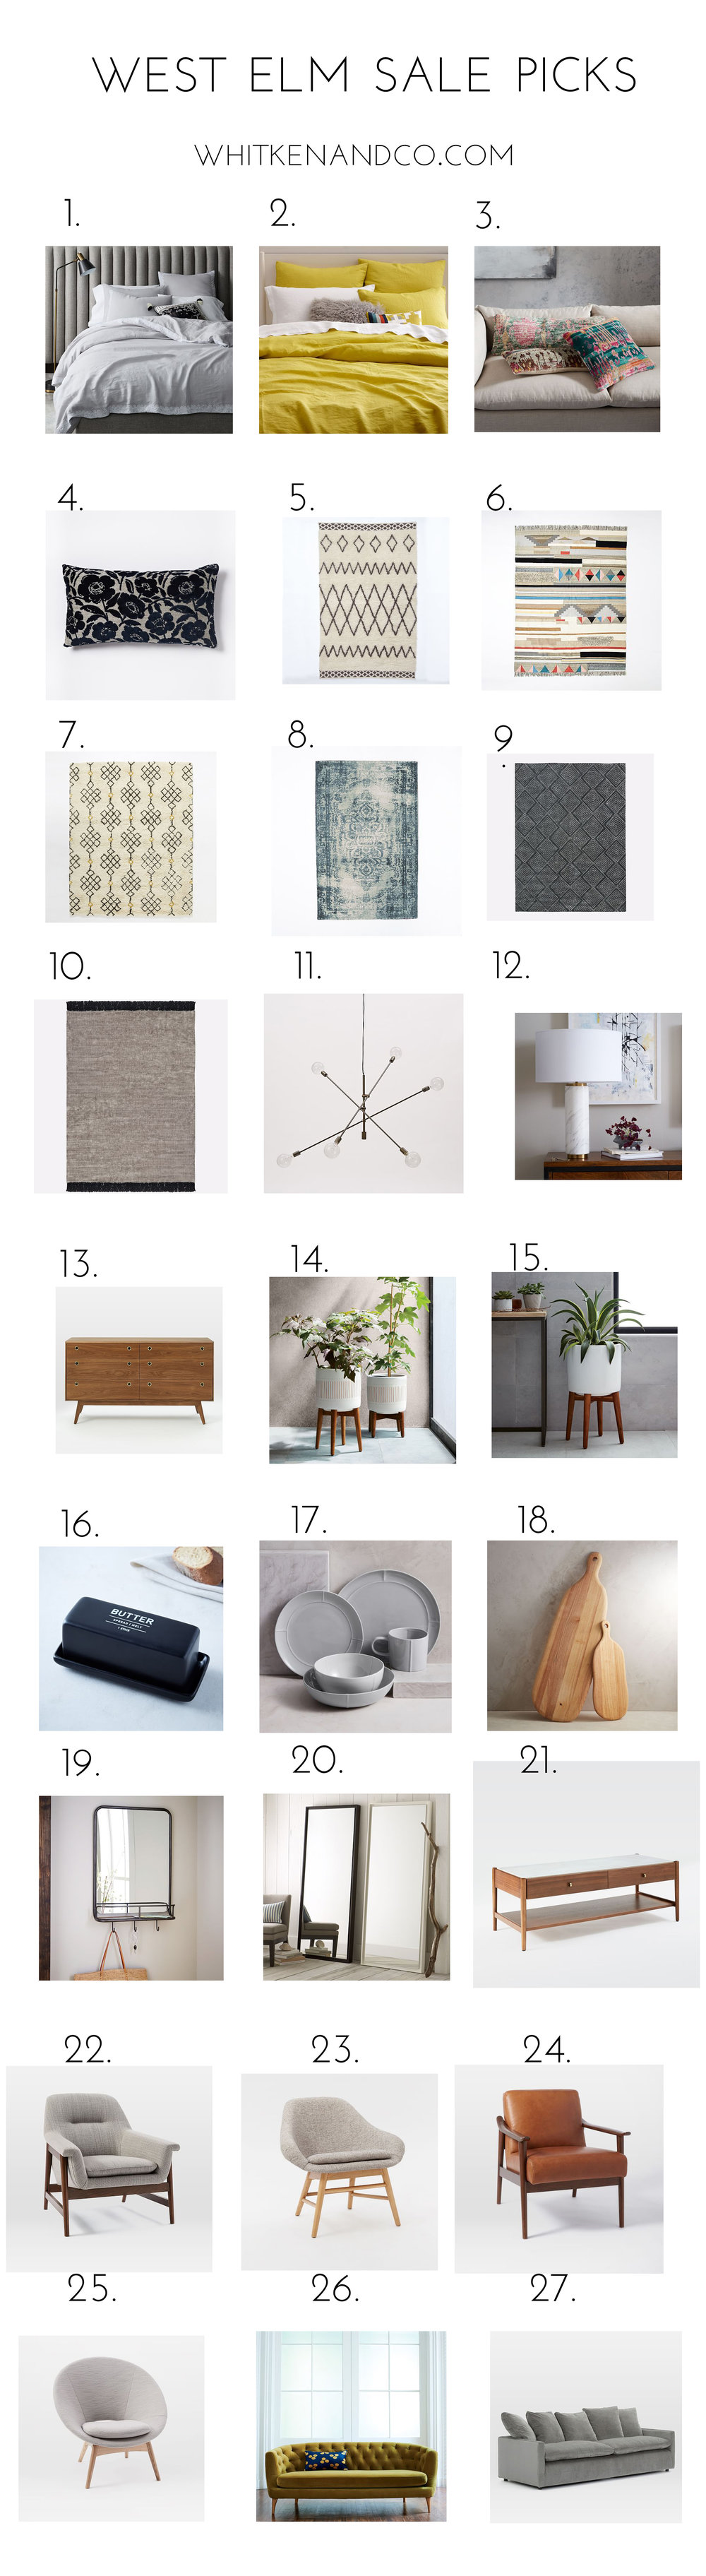 West Elm Sale Picks from Whitken & Co.